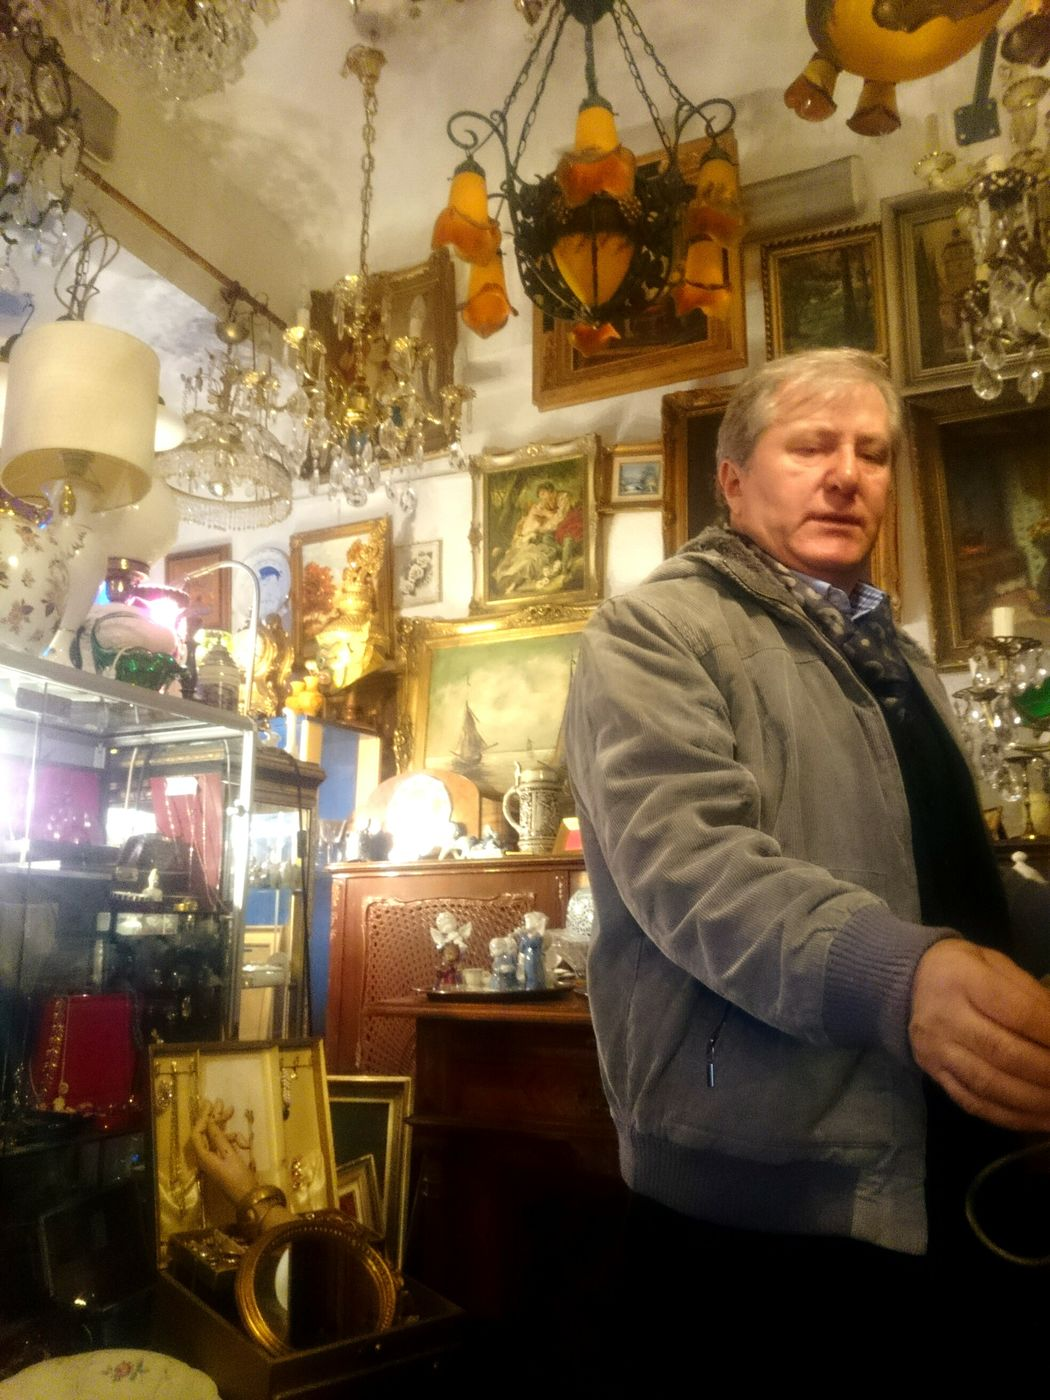 Shopkeeper Senior Adult One Man Only Gray Hair Indoors  Antique Shop Store Scenerie Statues Shiny Shop Golden Things Paintings Portrait Streetphotography